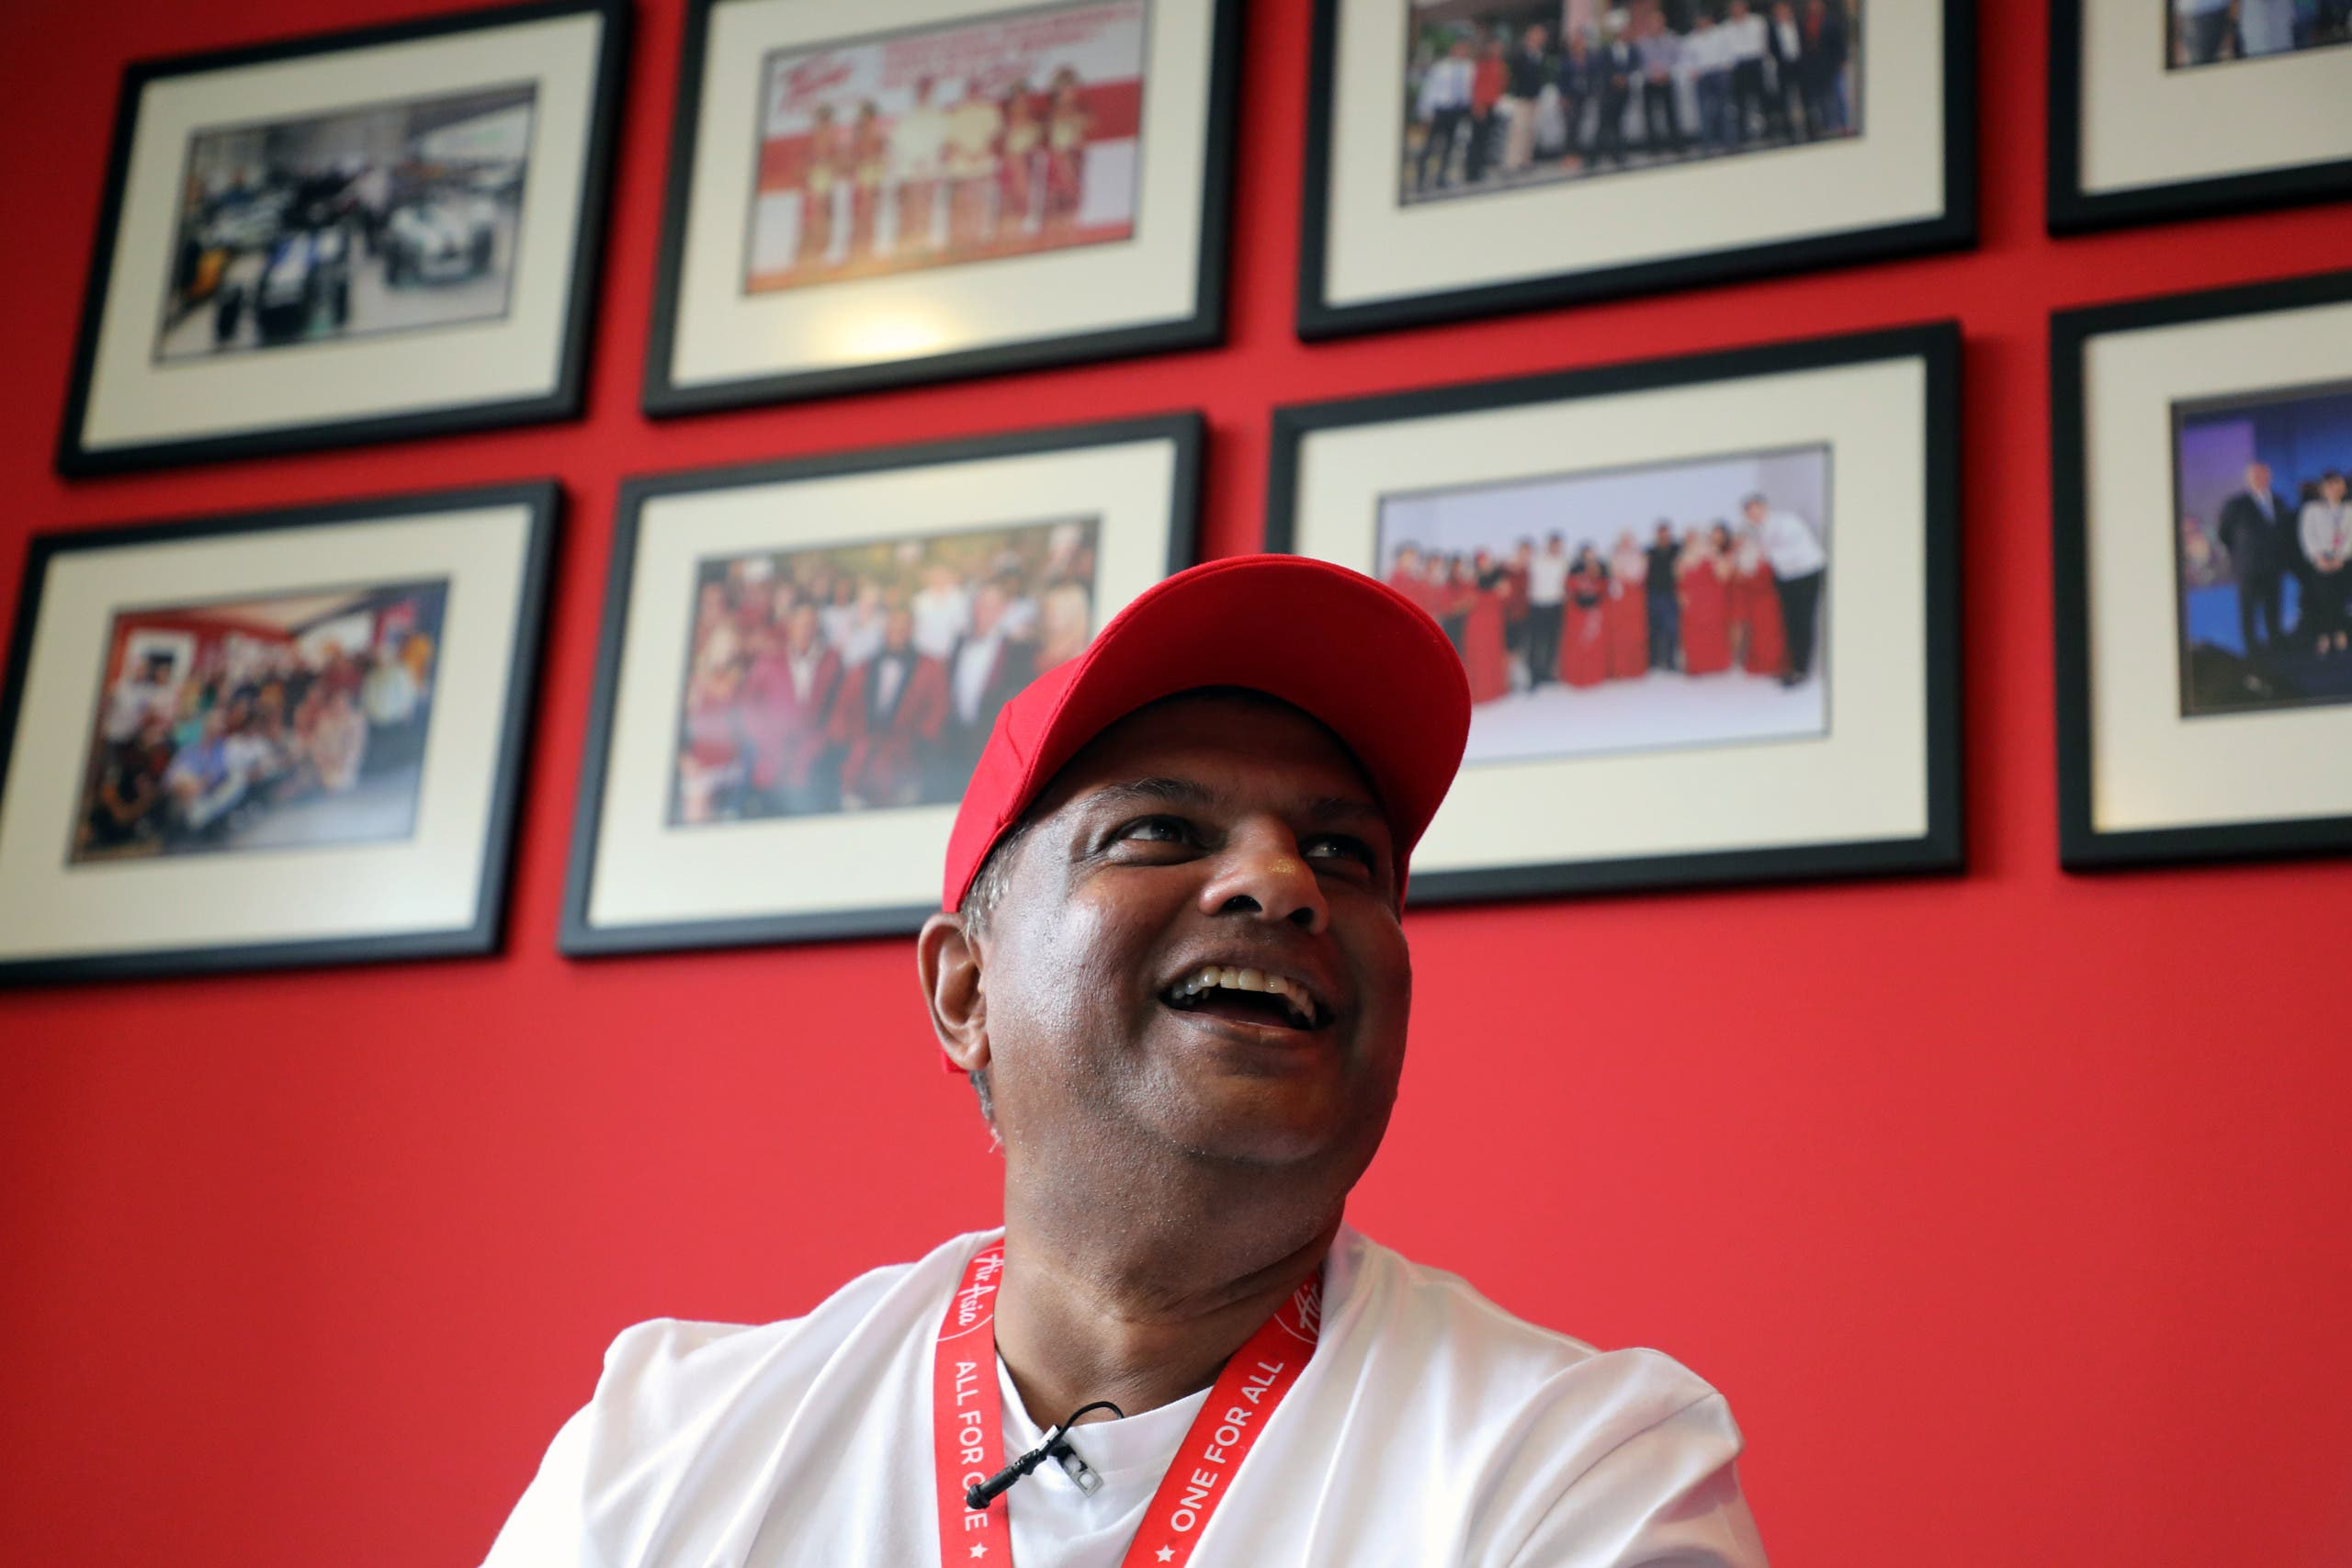 AirAsia Group CEO Tony Fernandes reacts during an interview in Kuala Lumpur, Malaysia October 8, 2020. (File photo: Reuters)